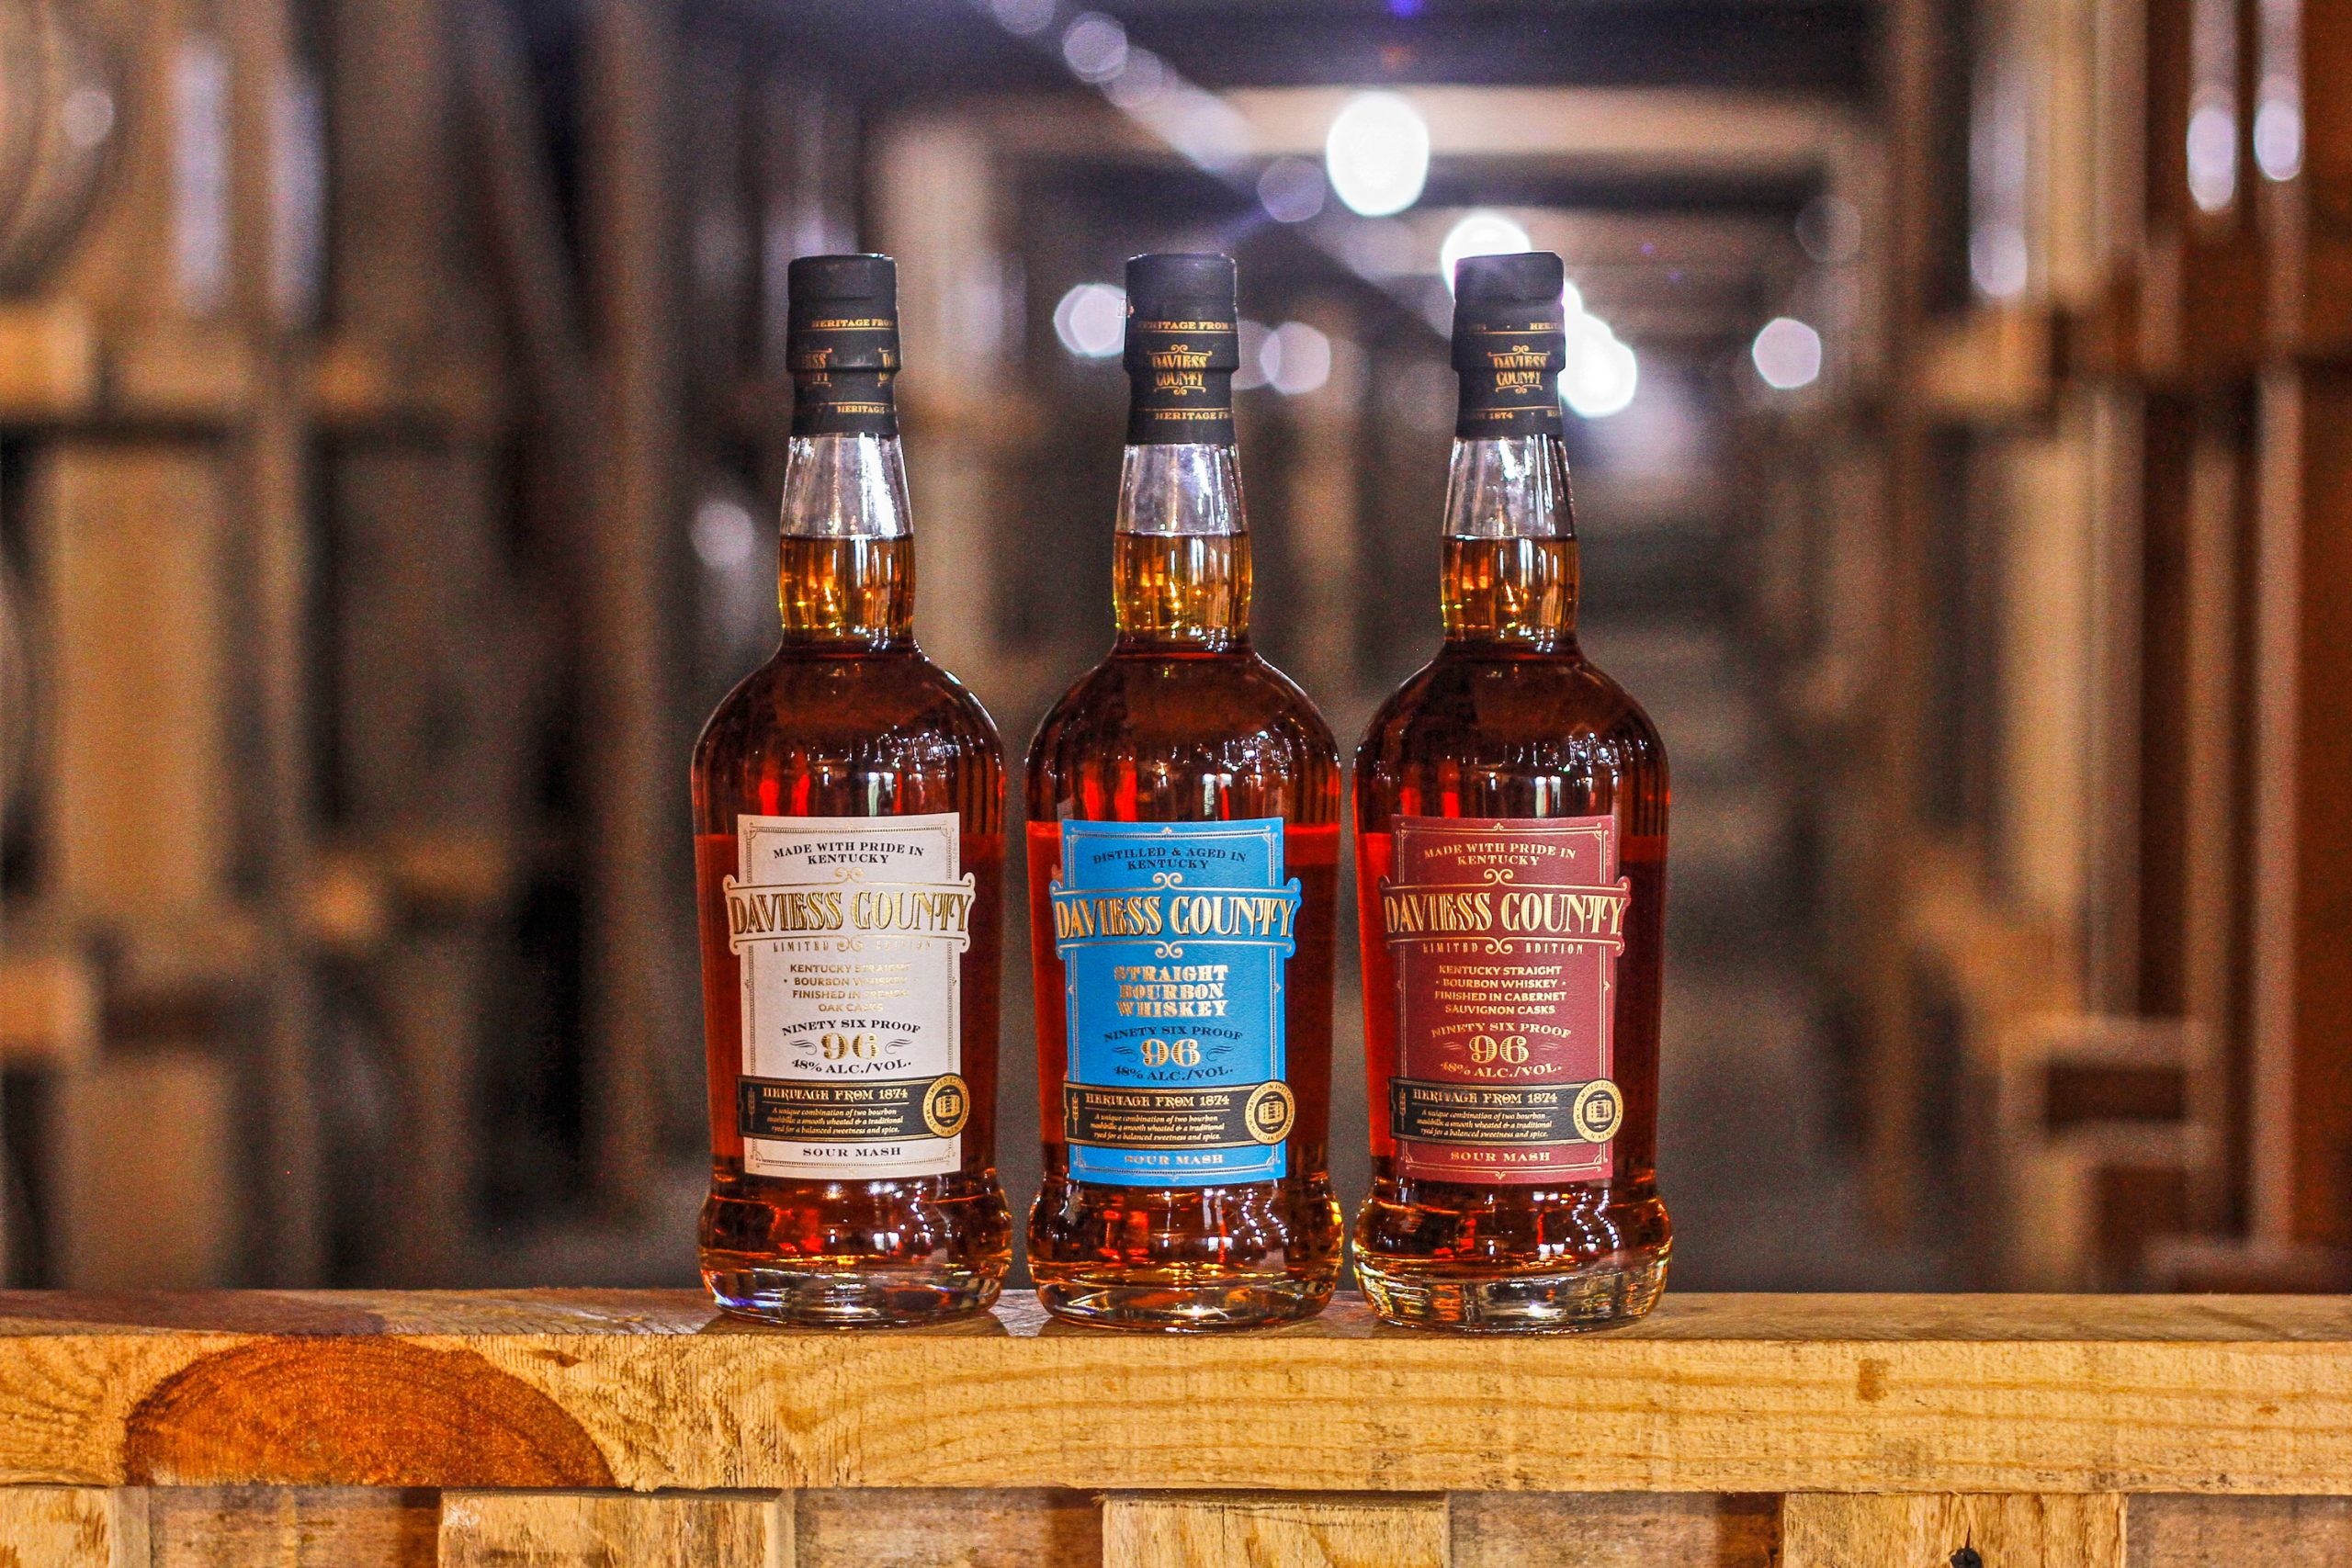 Why Daviess County Bourbon Is Made in Kentucky